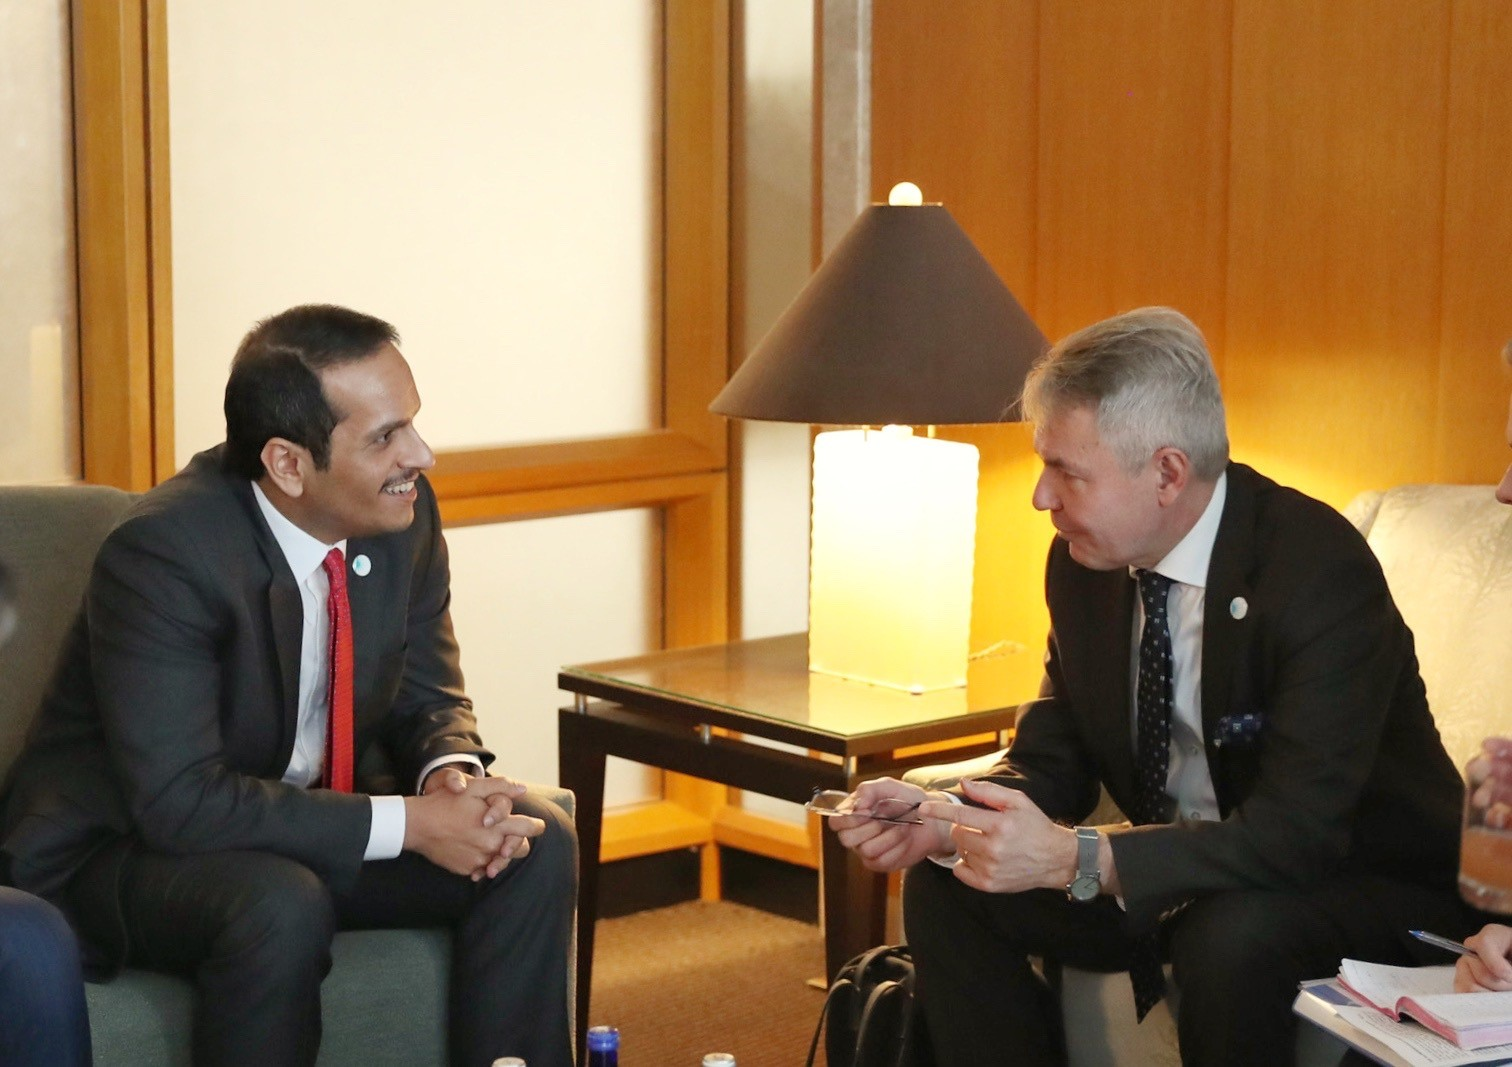 Deputy Prime Minister and Minister of Foreign Affairs Meets Finland's Foreign Minister